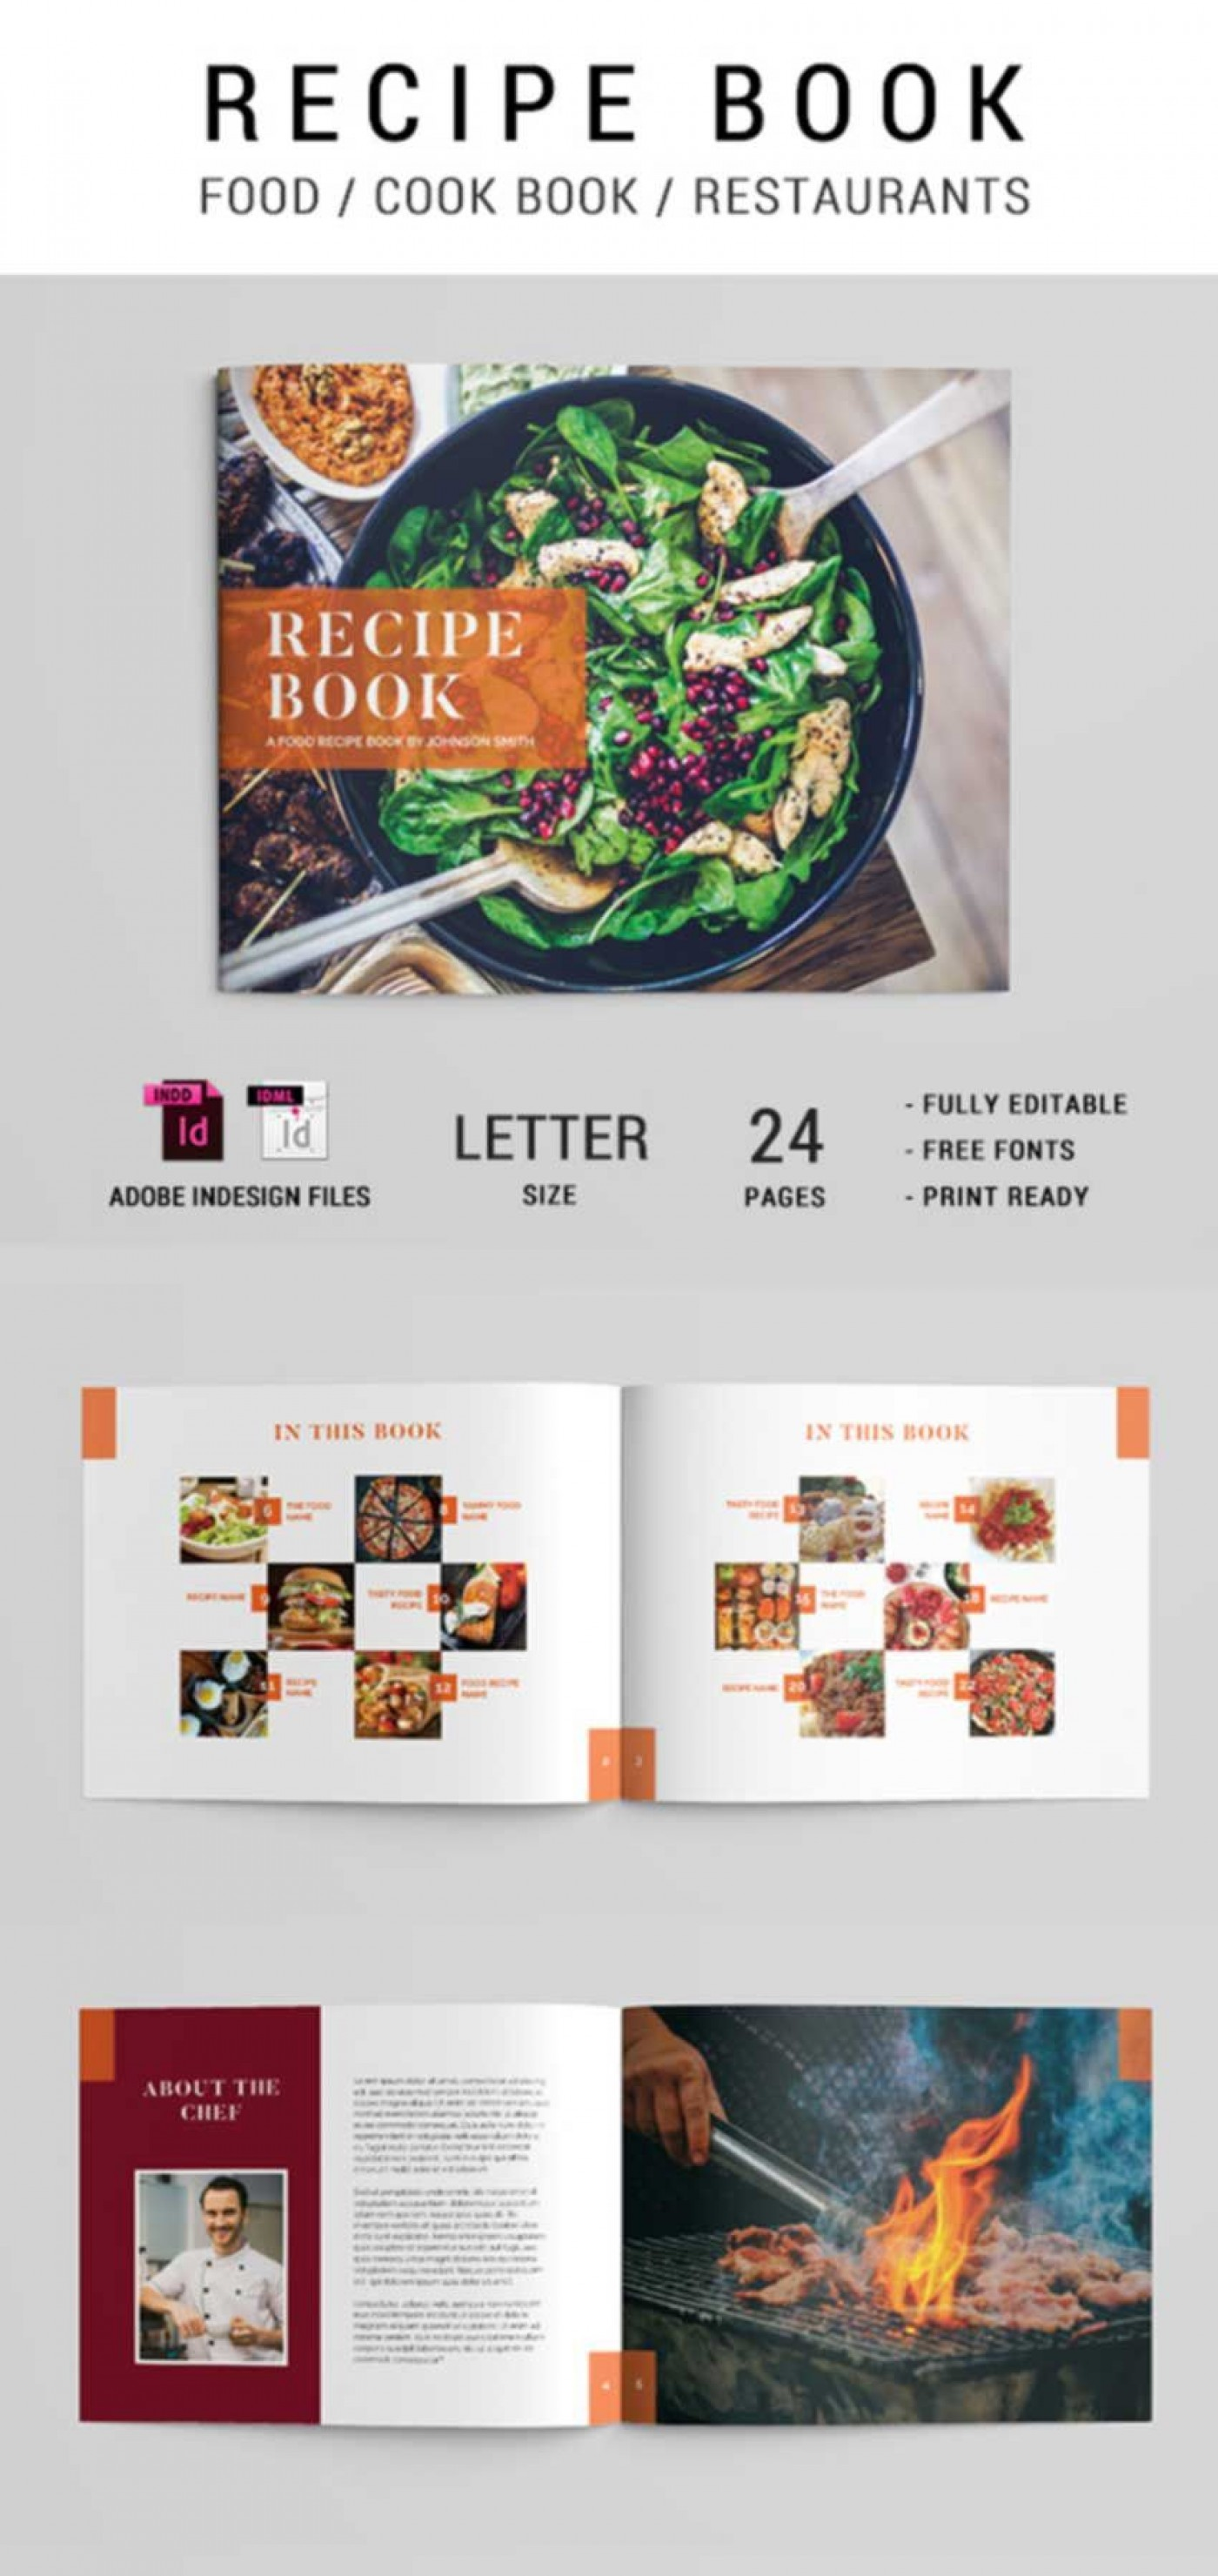 010 Stunning Create Your Own Cookbook Template Photo  Make Free My1400